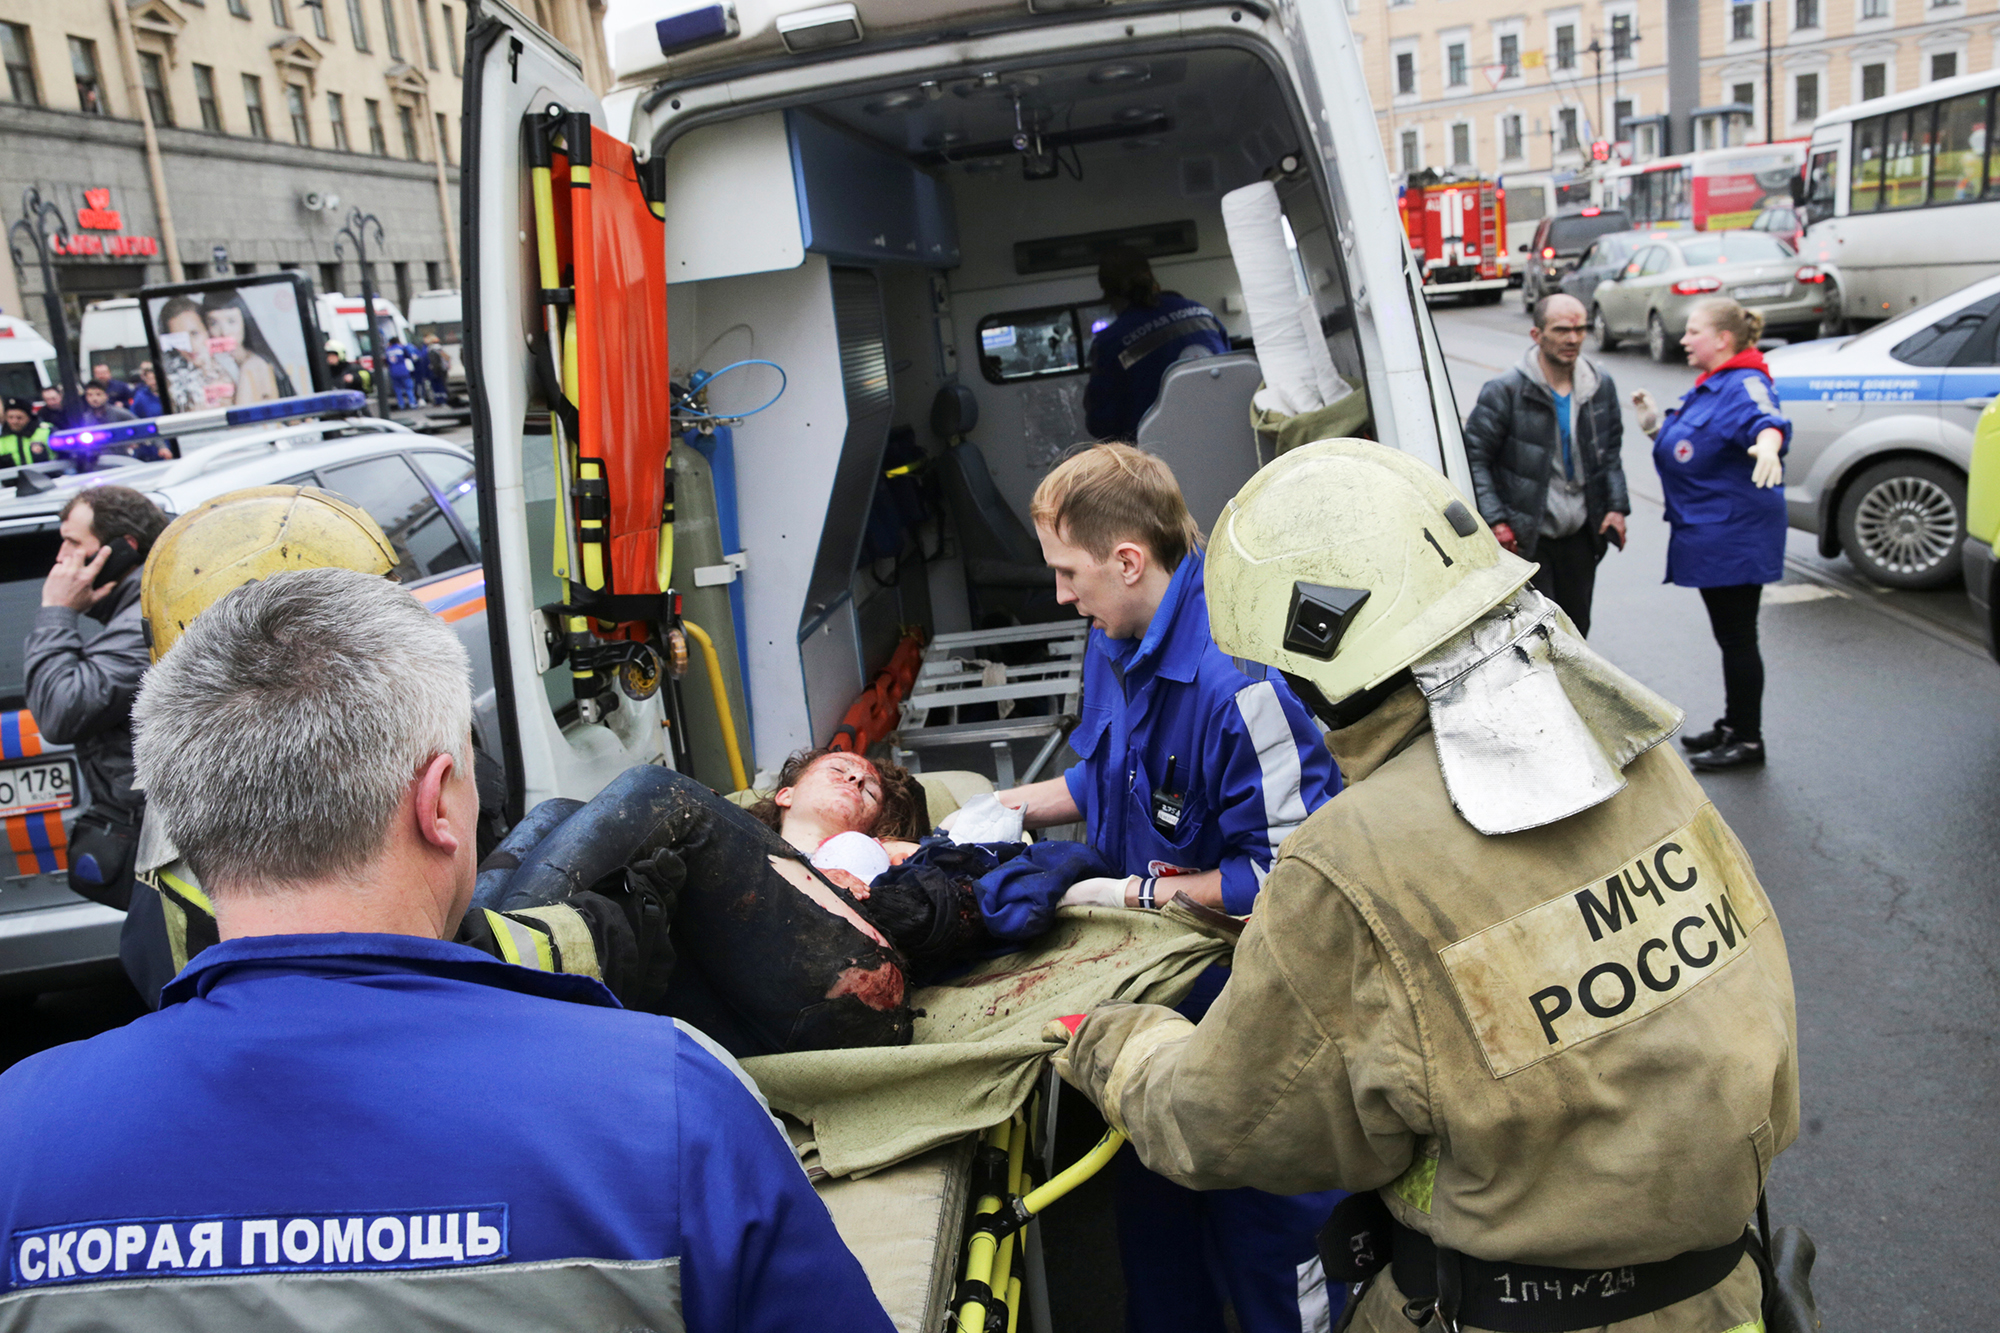 An injured person is helped by emergency services outside Sennaya Ploshchad metro station, following explosions in two train carriages in St. Petersburg, Russia, on April 3, 2017.